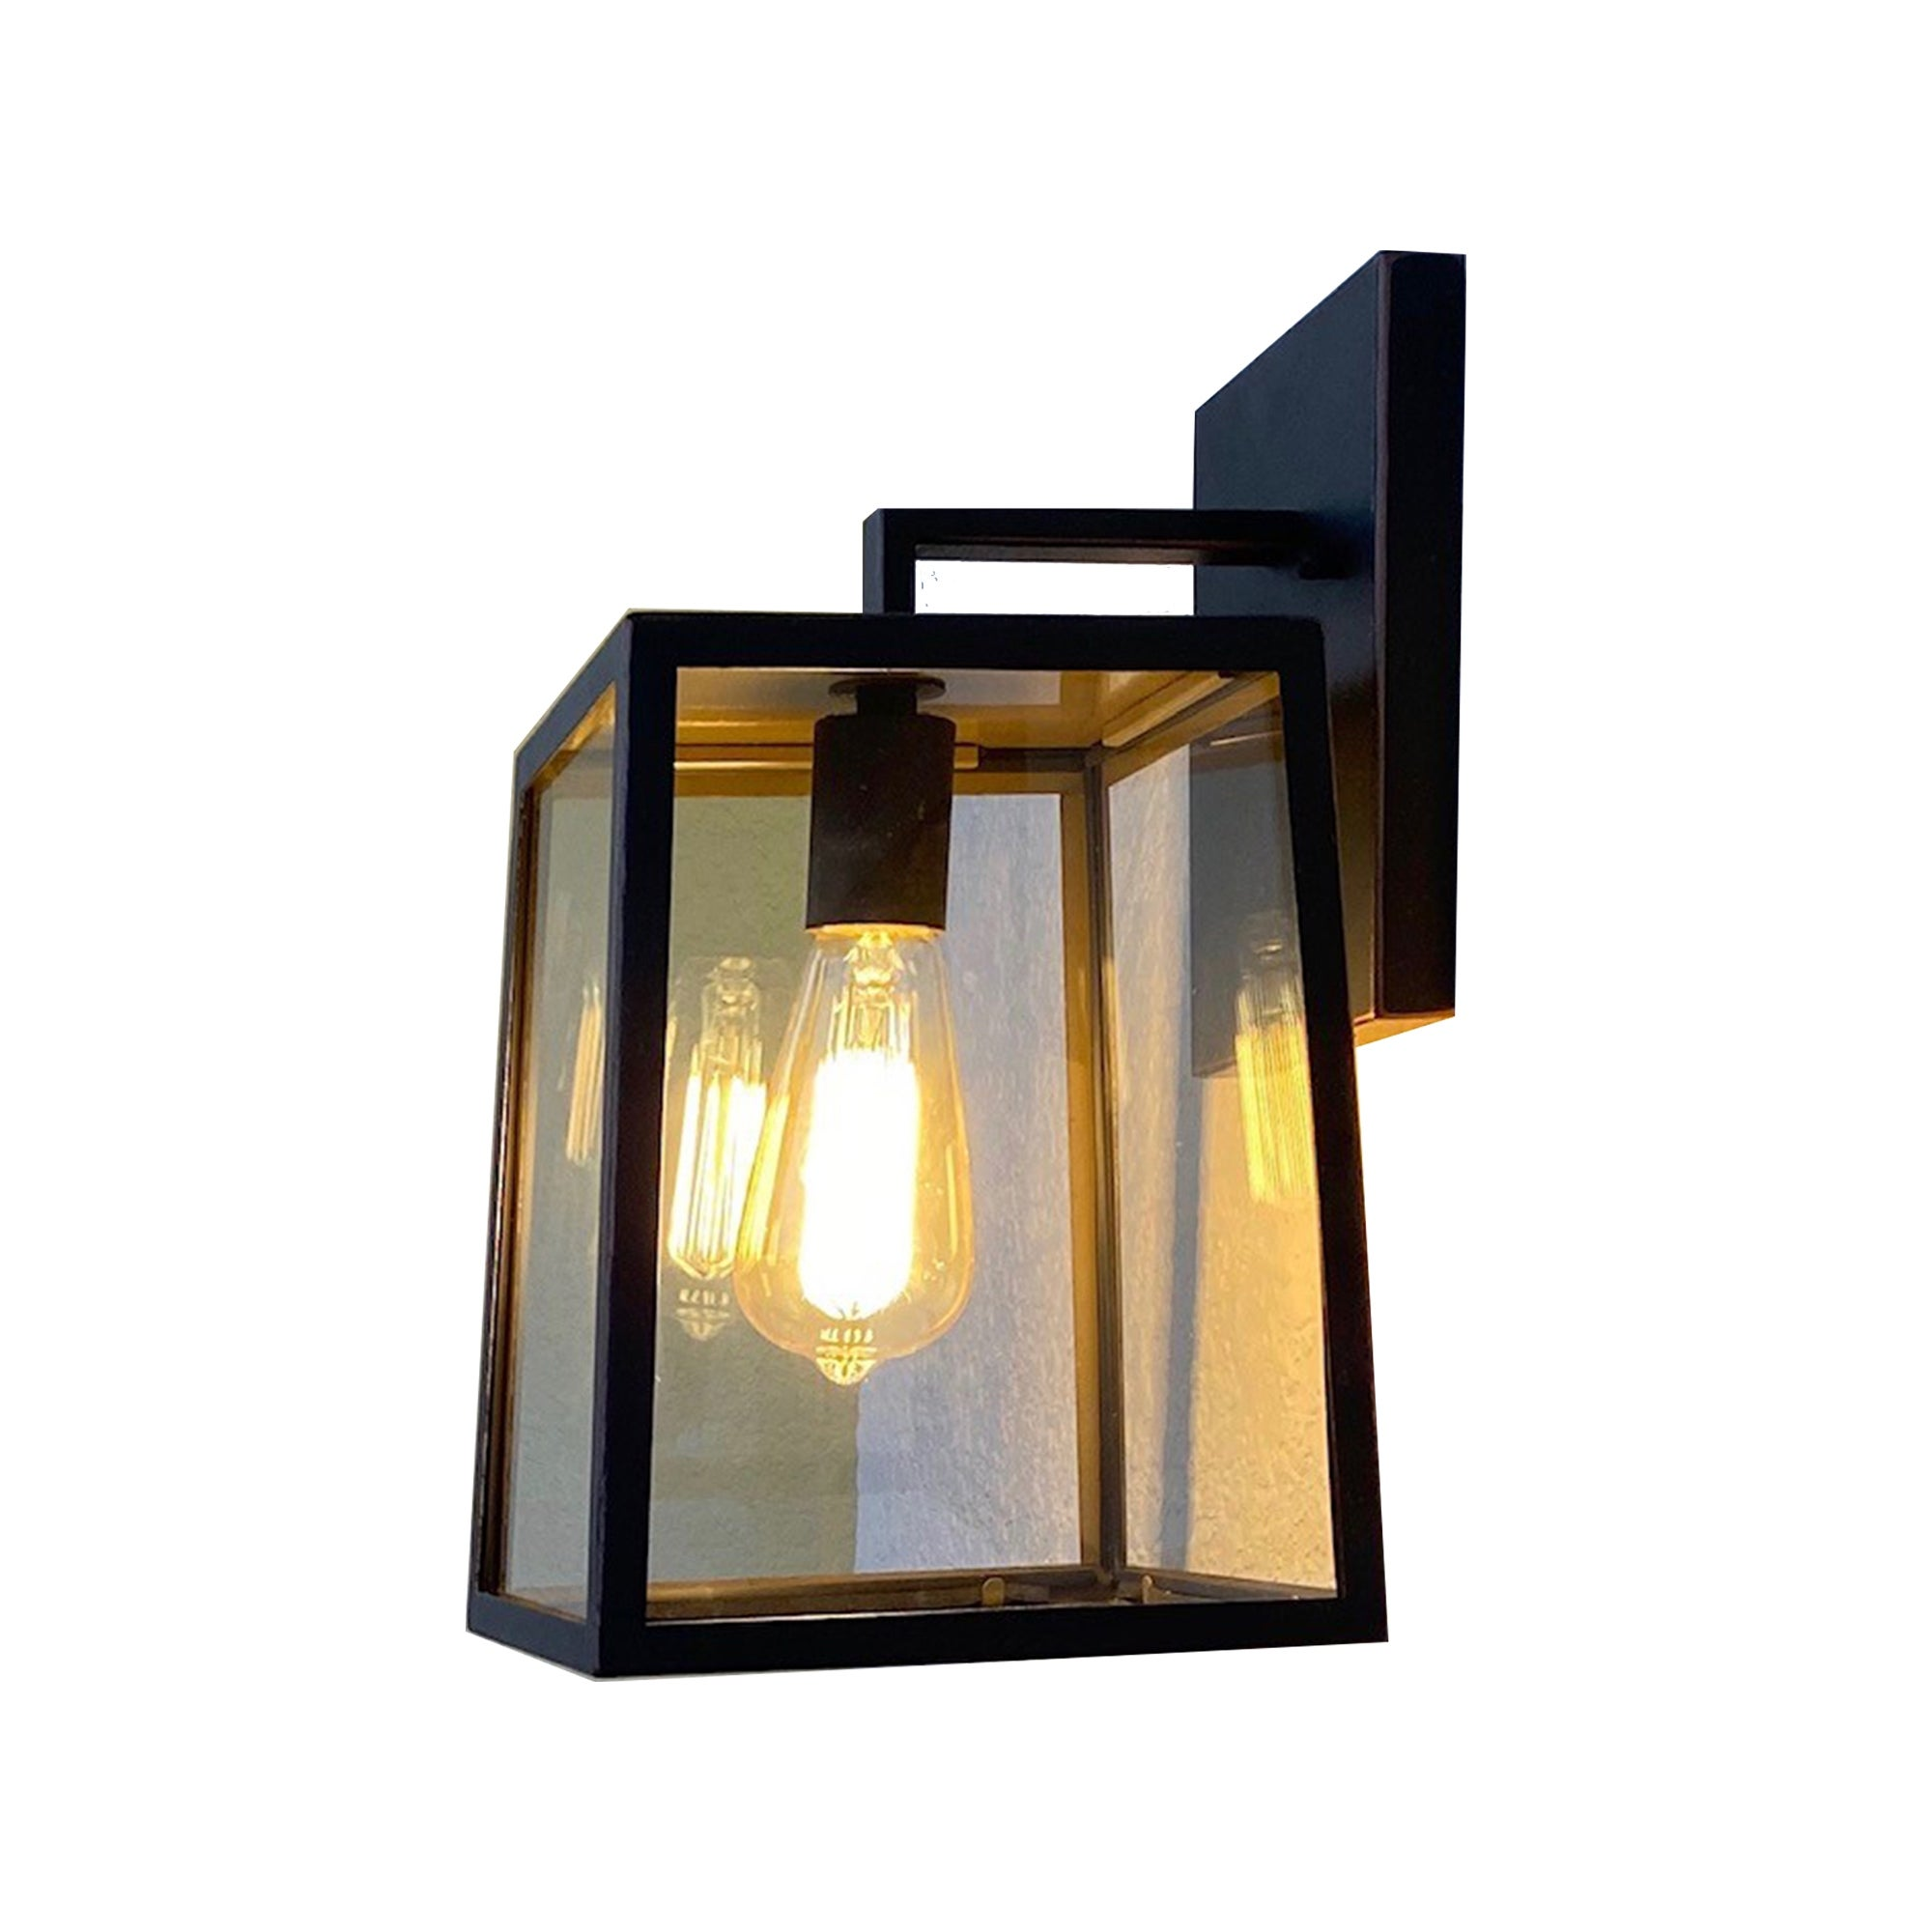 Shop Trey 1 Light Outdoor Wall Mounted Lighting 6w X 7l X 10 75h In On Sale Overstock 28712192